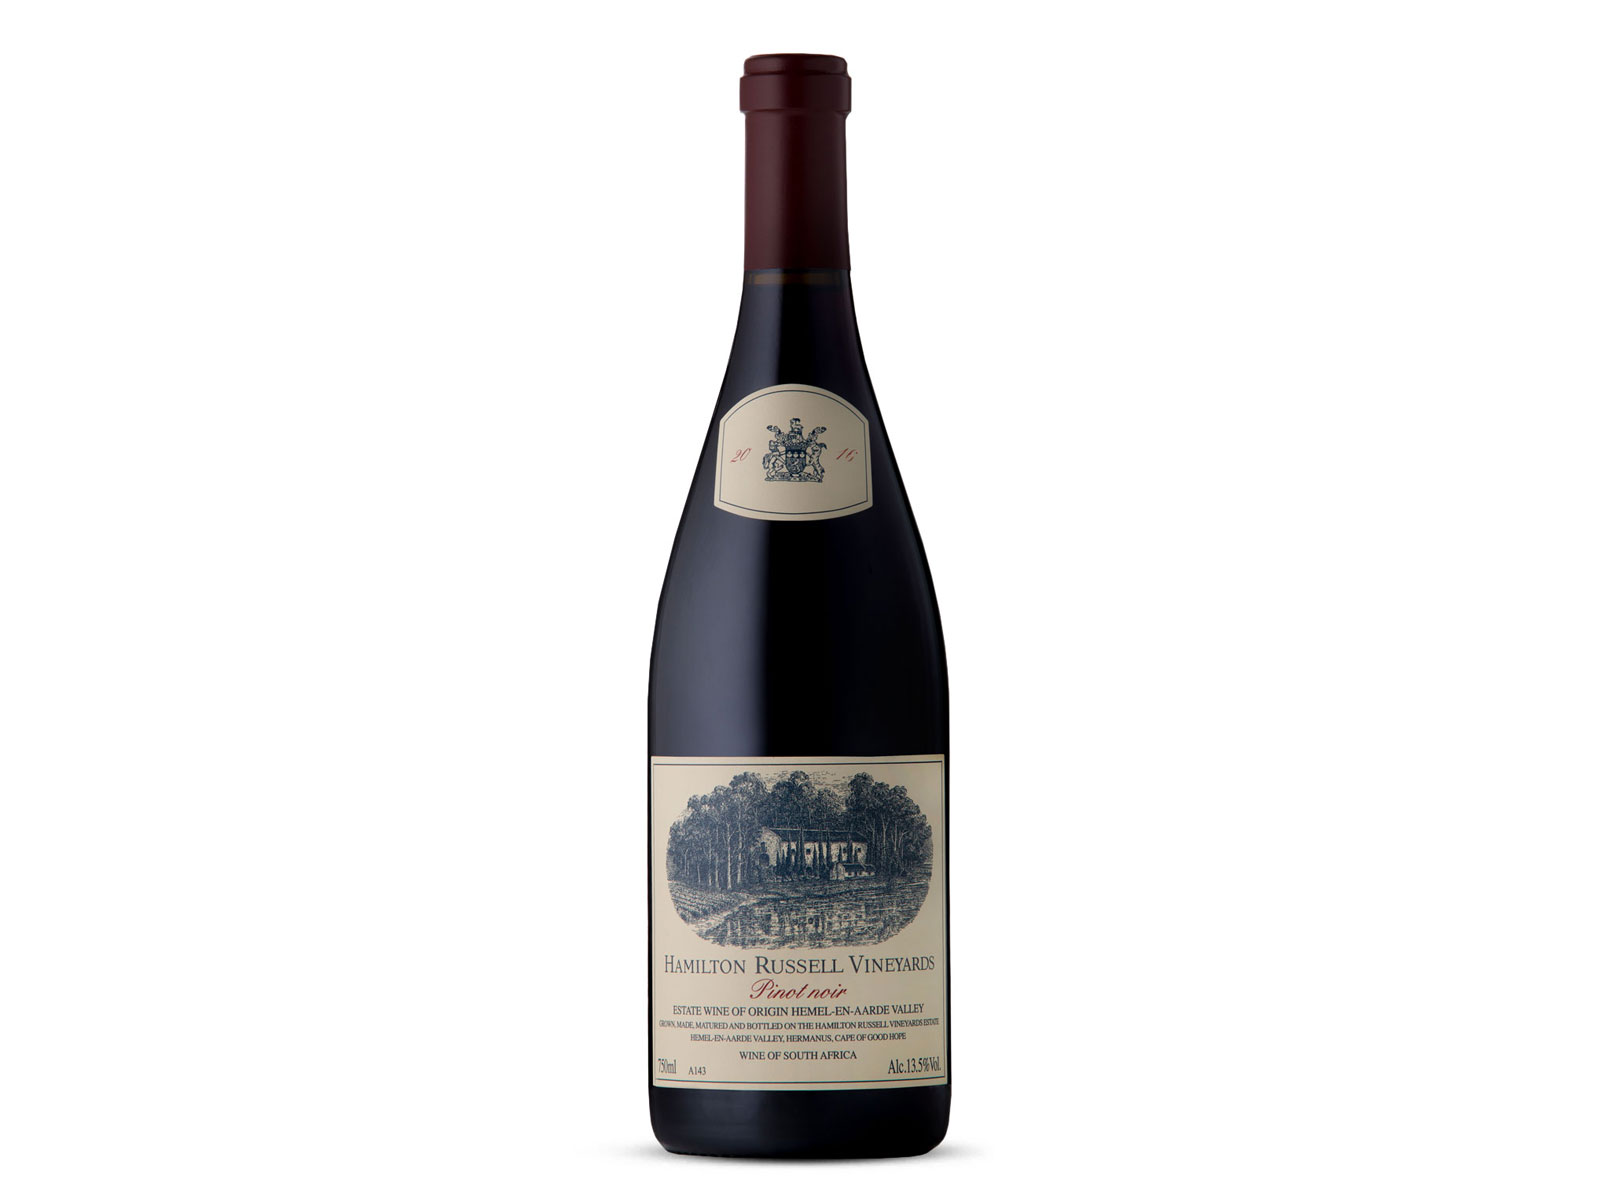 bottle of 2016 Hamilton Russell Vineyards Pinot Noir, Hemel-En-Aarde Valley, South Africa